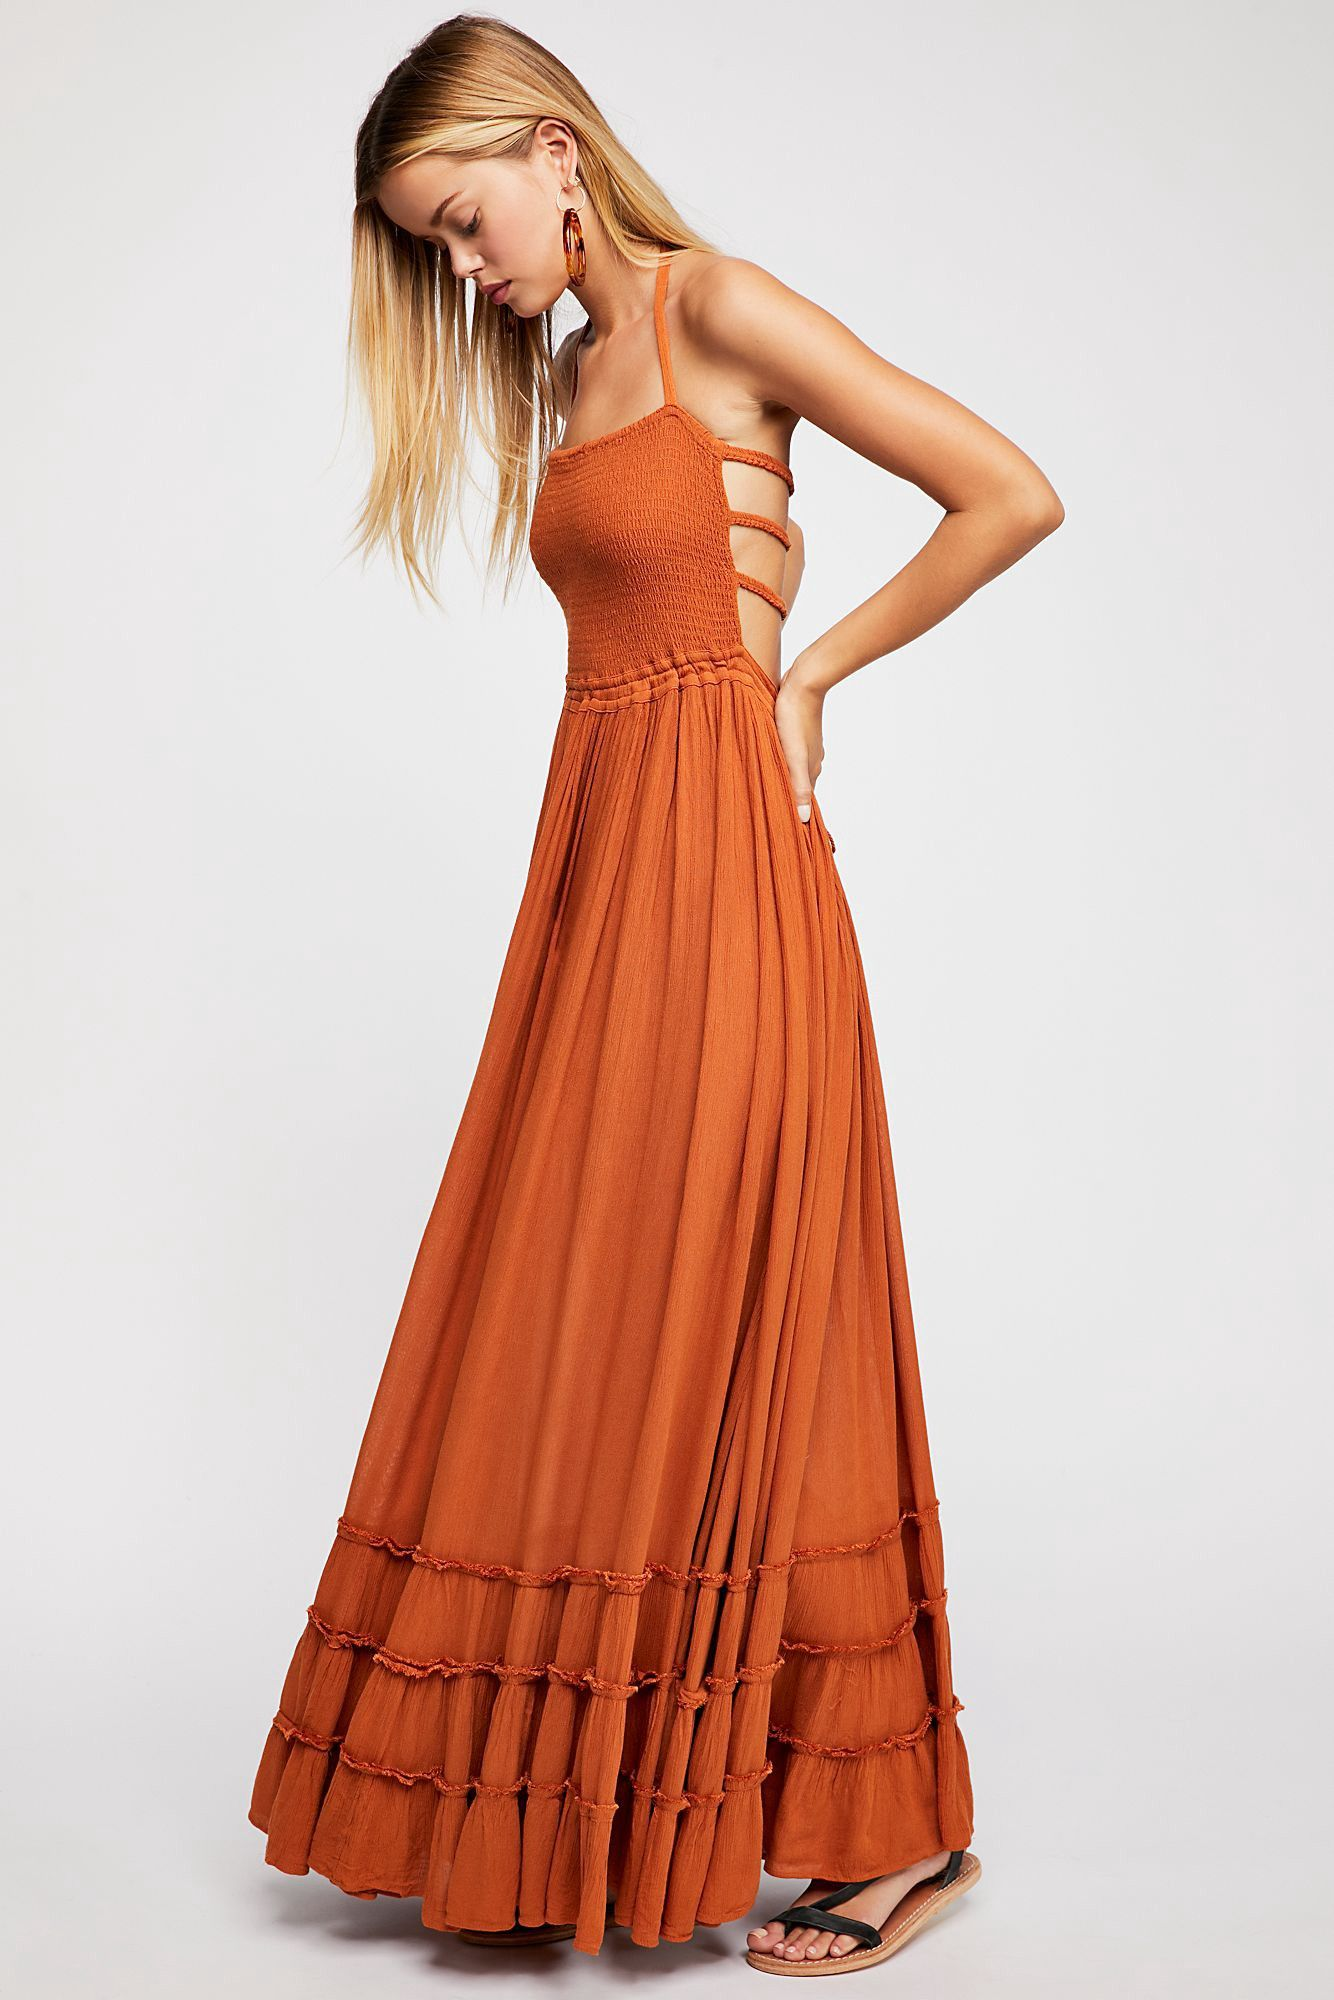 4708809c212f Crinkly strapless maxi dress, made from our sheer and gauzy Endless Summer  fabric, with a stretchy smocked bodice, halter neck tie, and low strappy  back.